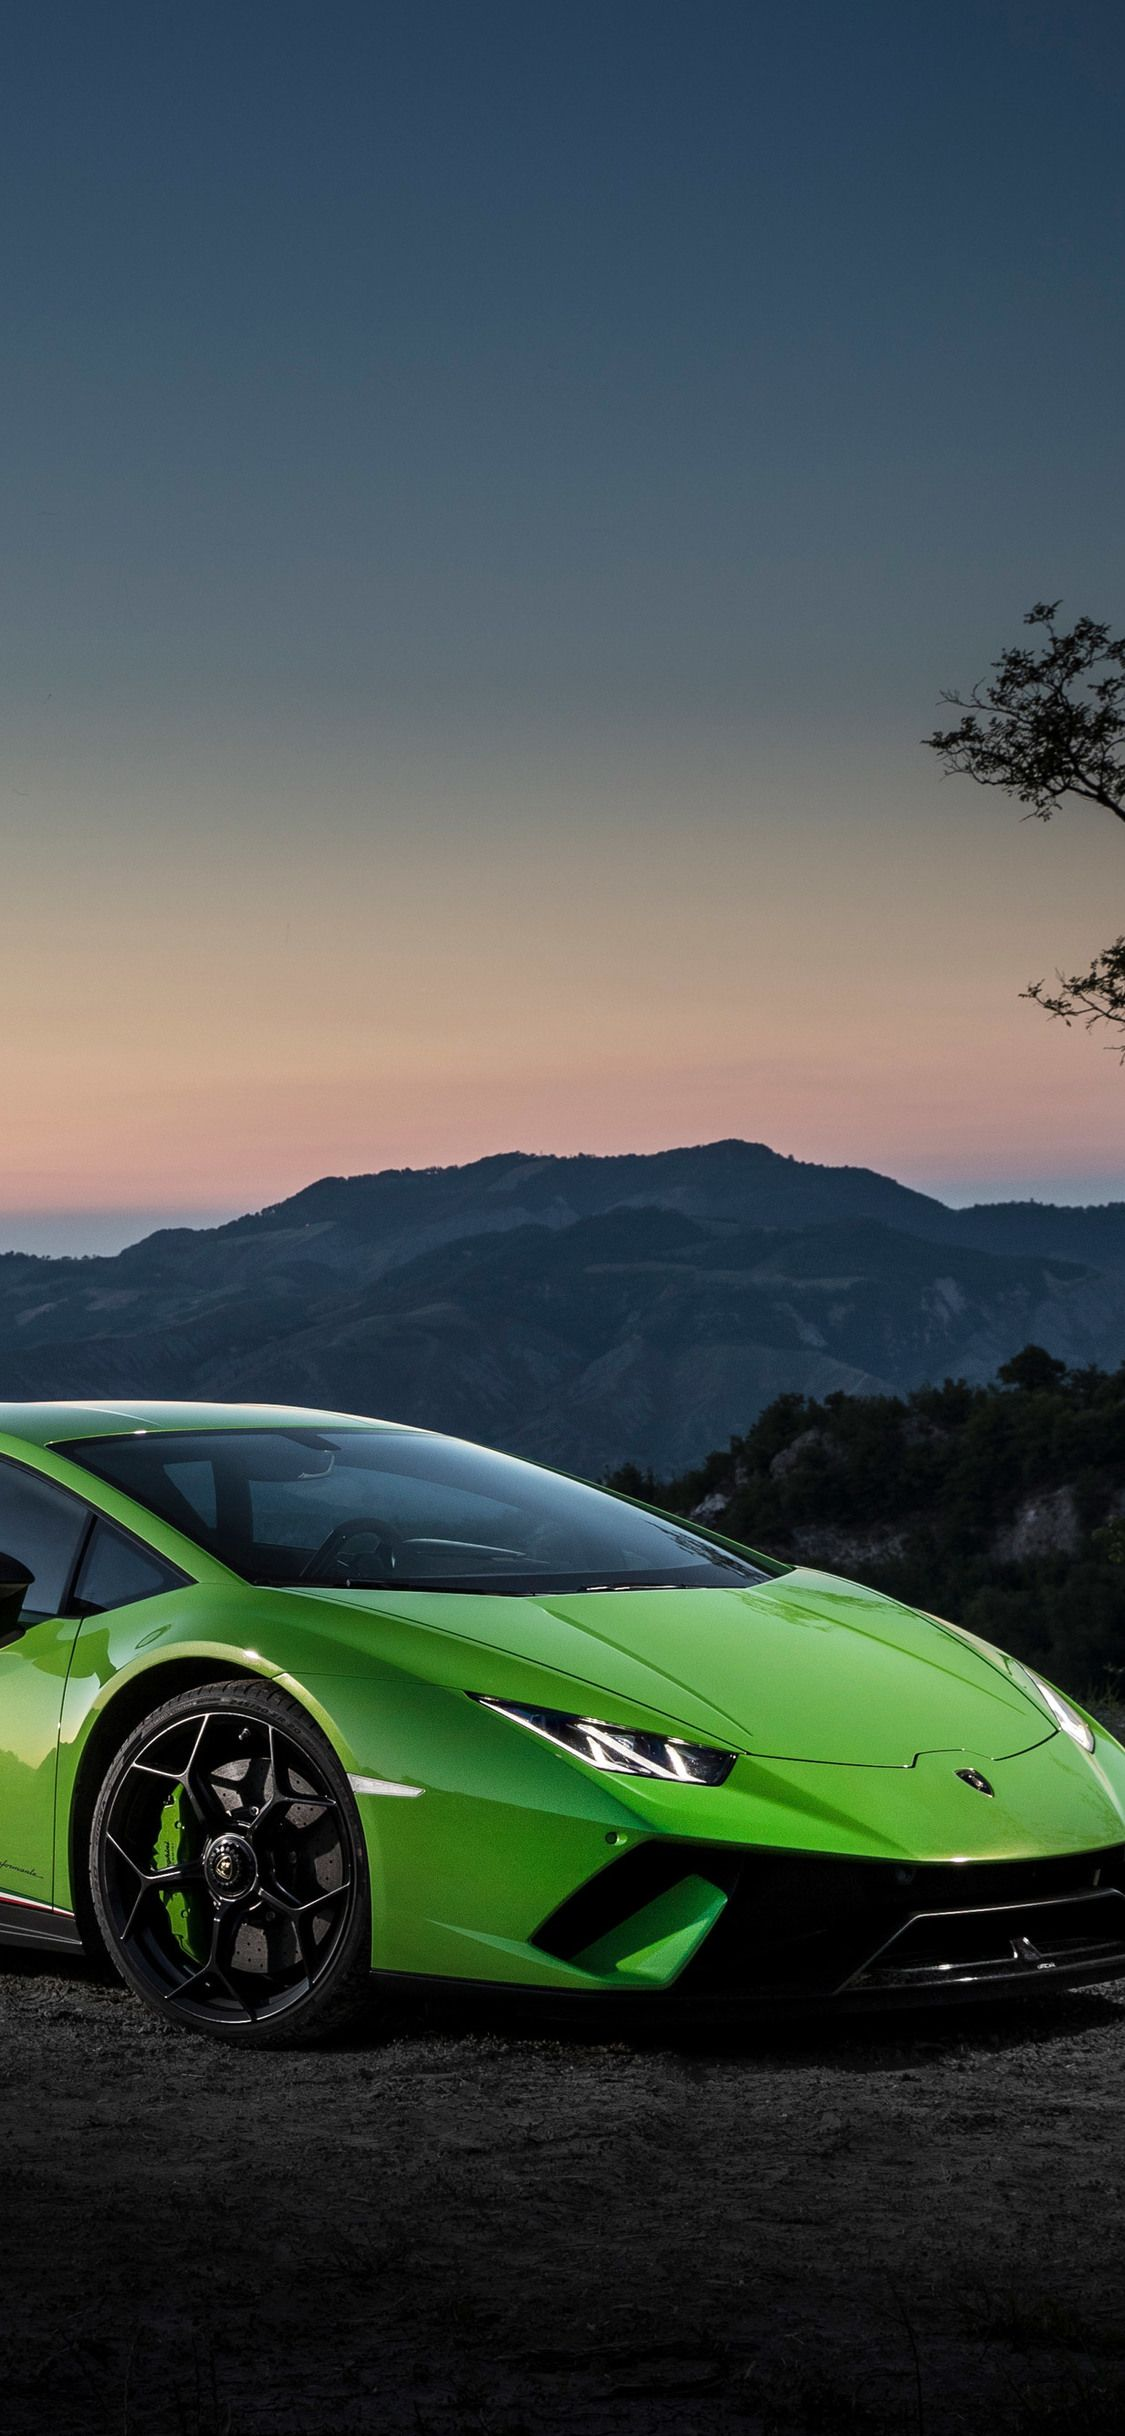 Cool Iphone X Wallpaper 4k Download Tecnologist Lamborghini Aventador Wallpaper Lamborghini Wallpaper Iphone Lamborghini Veneno